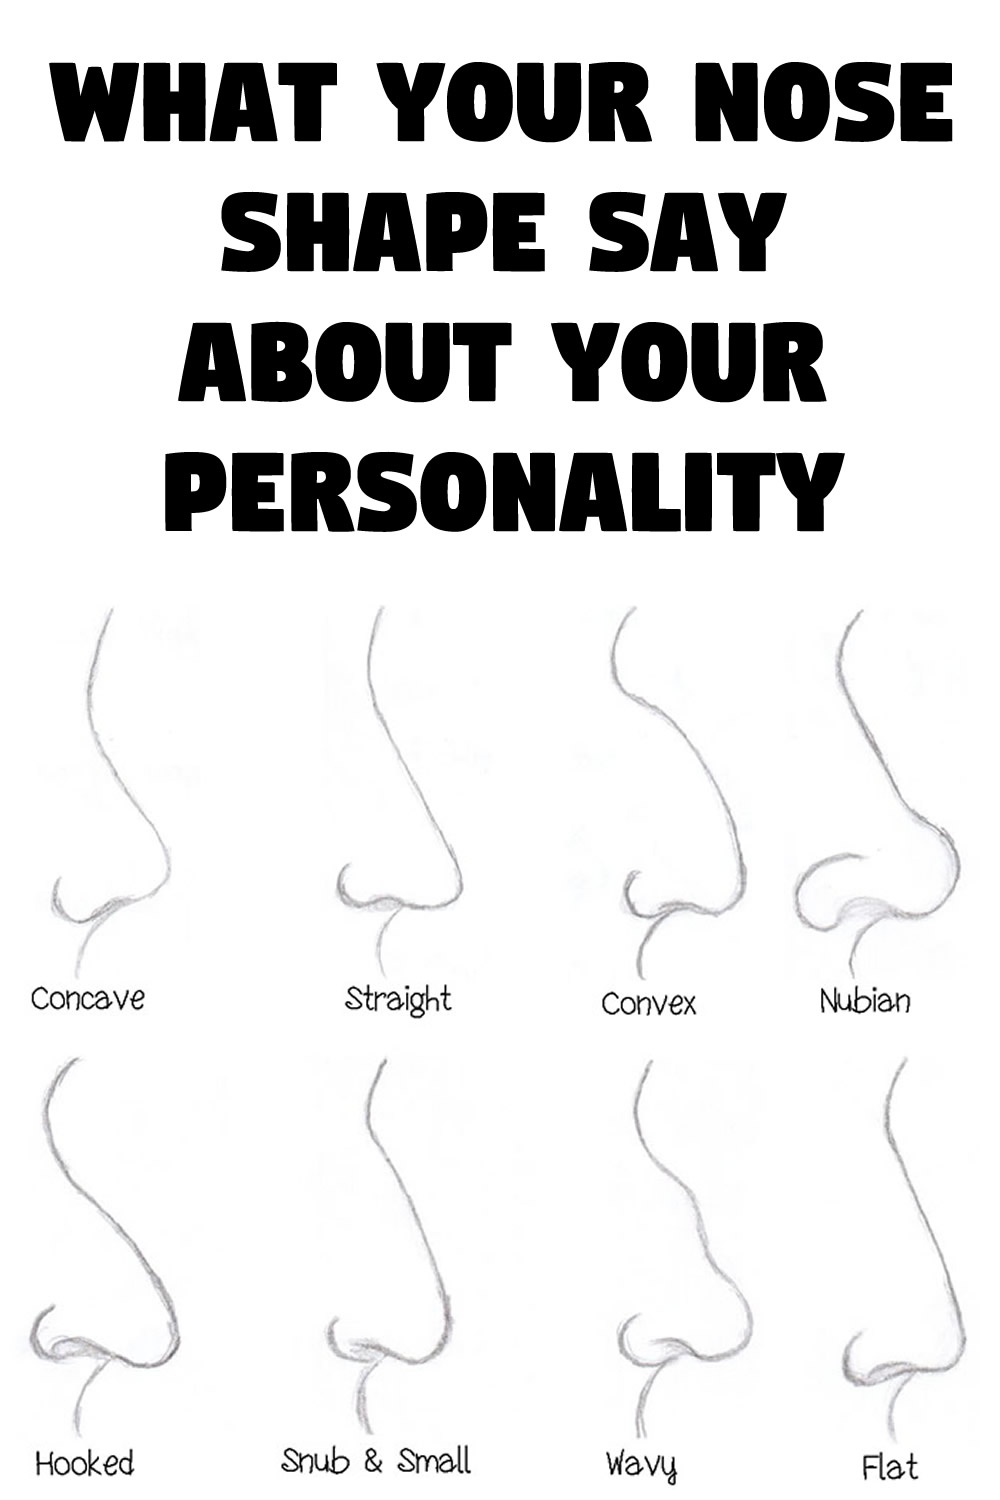 What your nose shape say about your personality